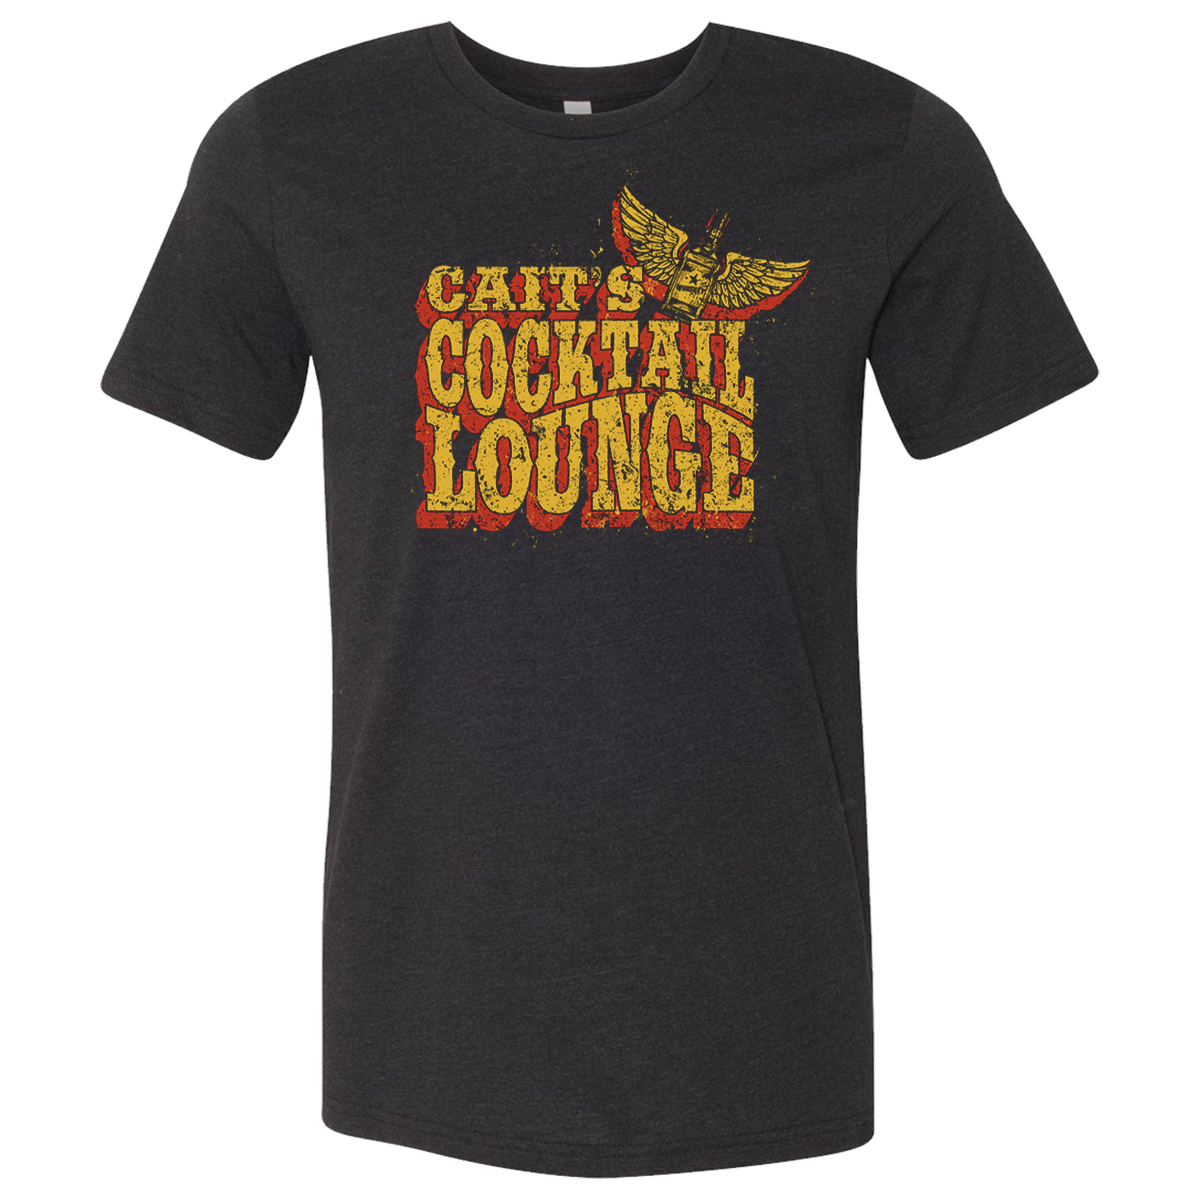 Cait's Cocktail Lounge Tee